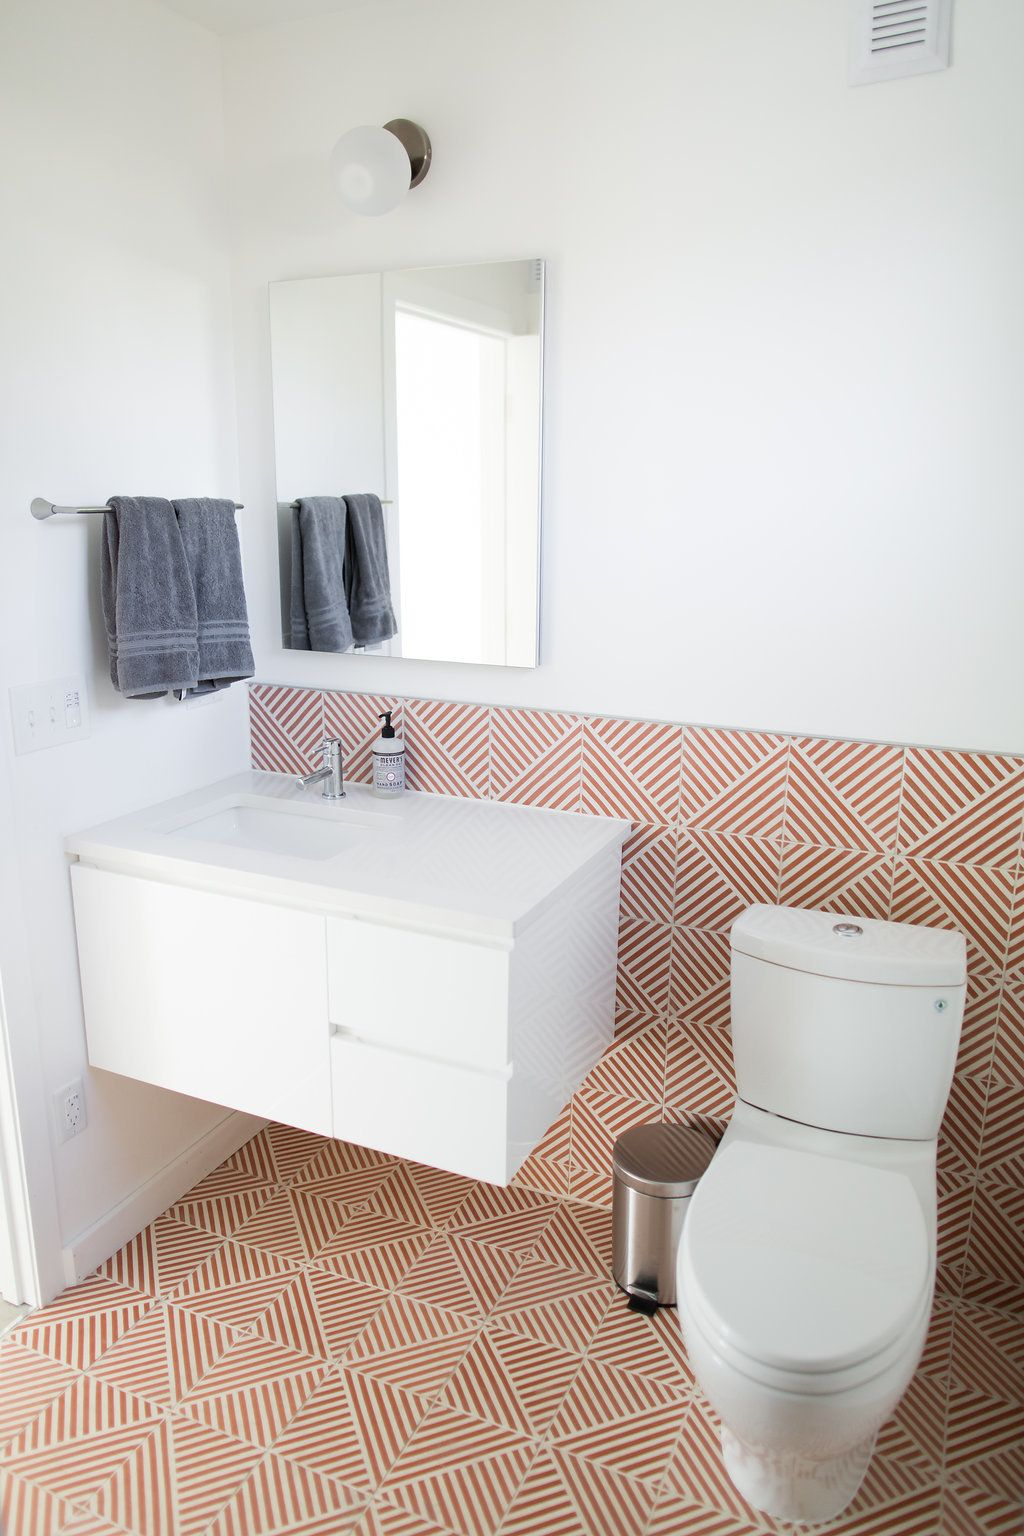 Erin Adams Tile Adds Interest And Color To A Minimal Bathroom Division  Street ADU By Studio Petretti.